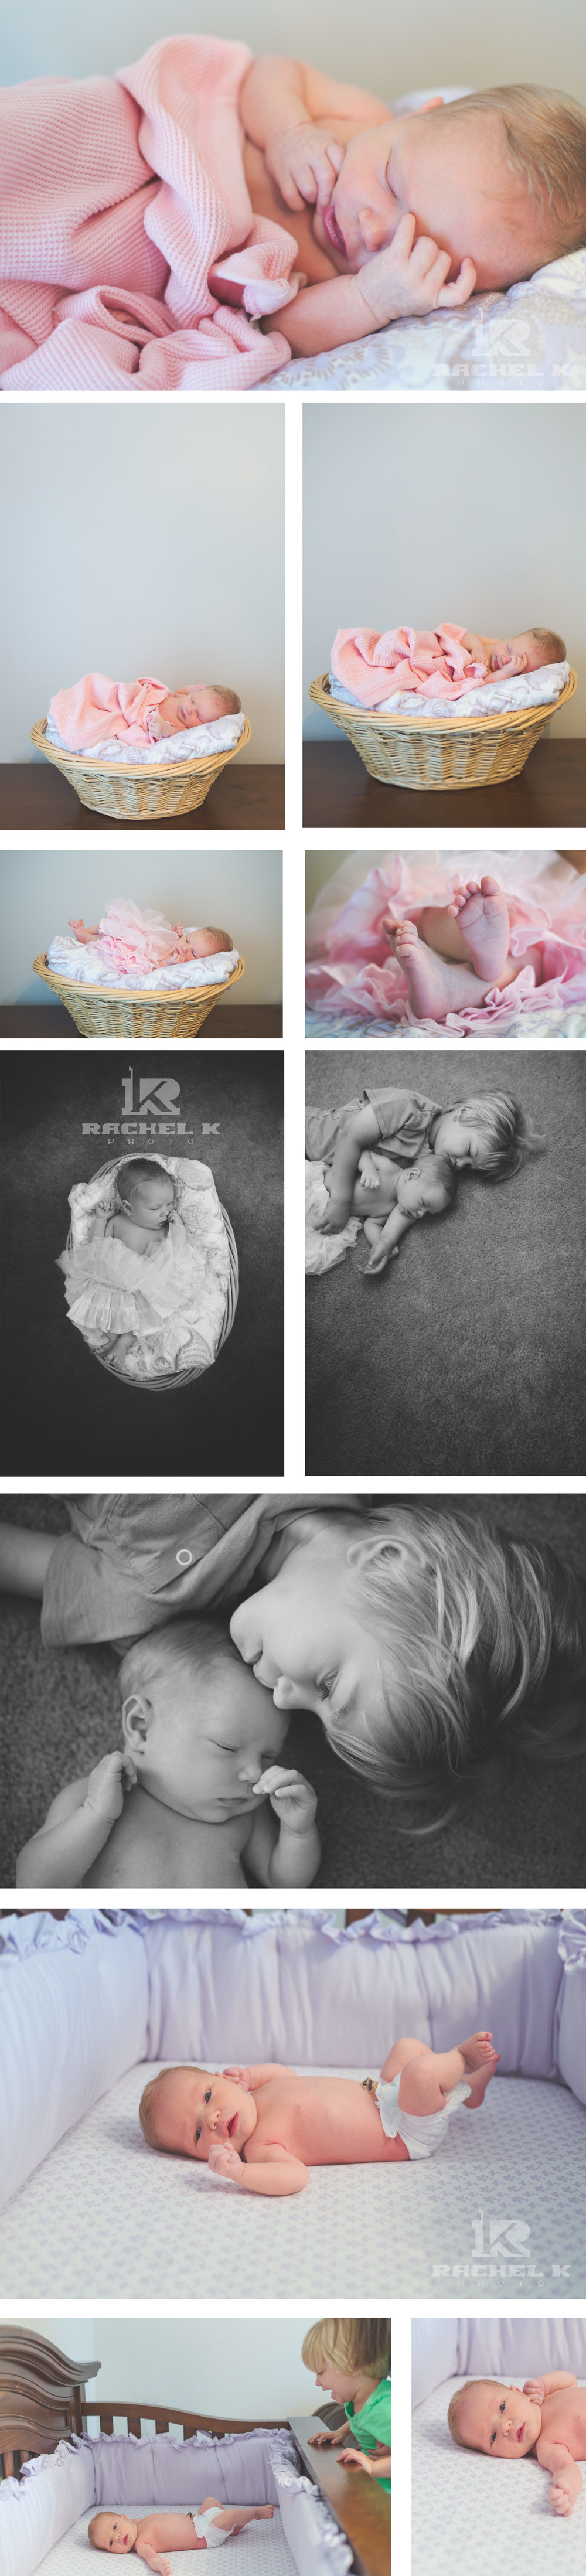 Rachel K Photo lifestyle session-newborn